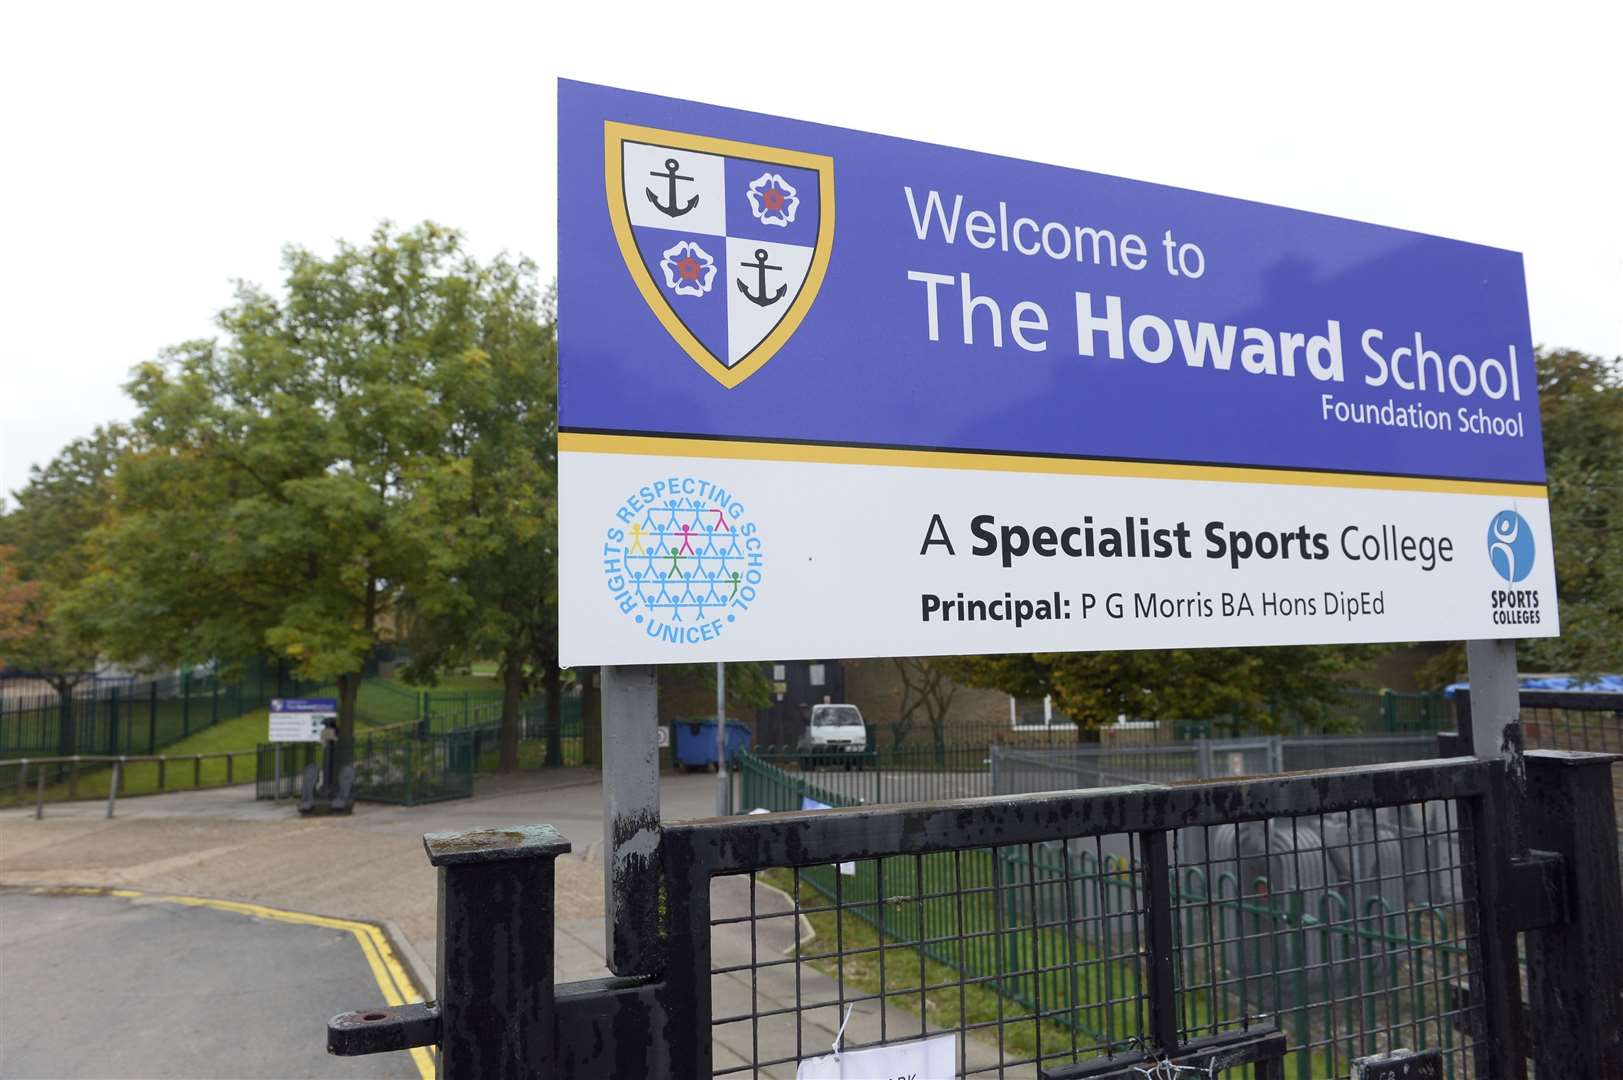 The Howard School, Derwent Way, Rainham